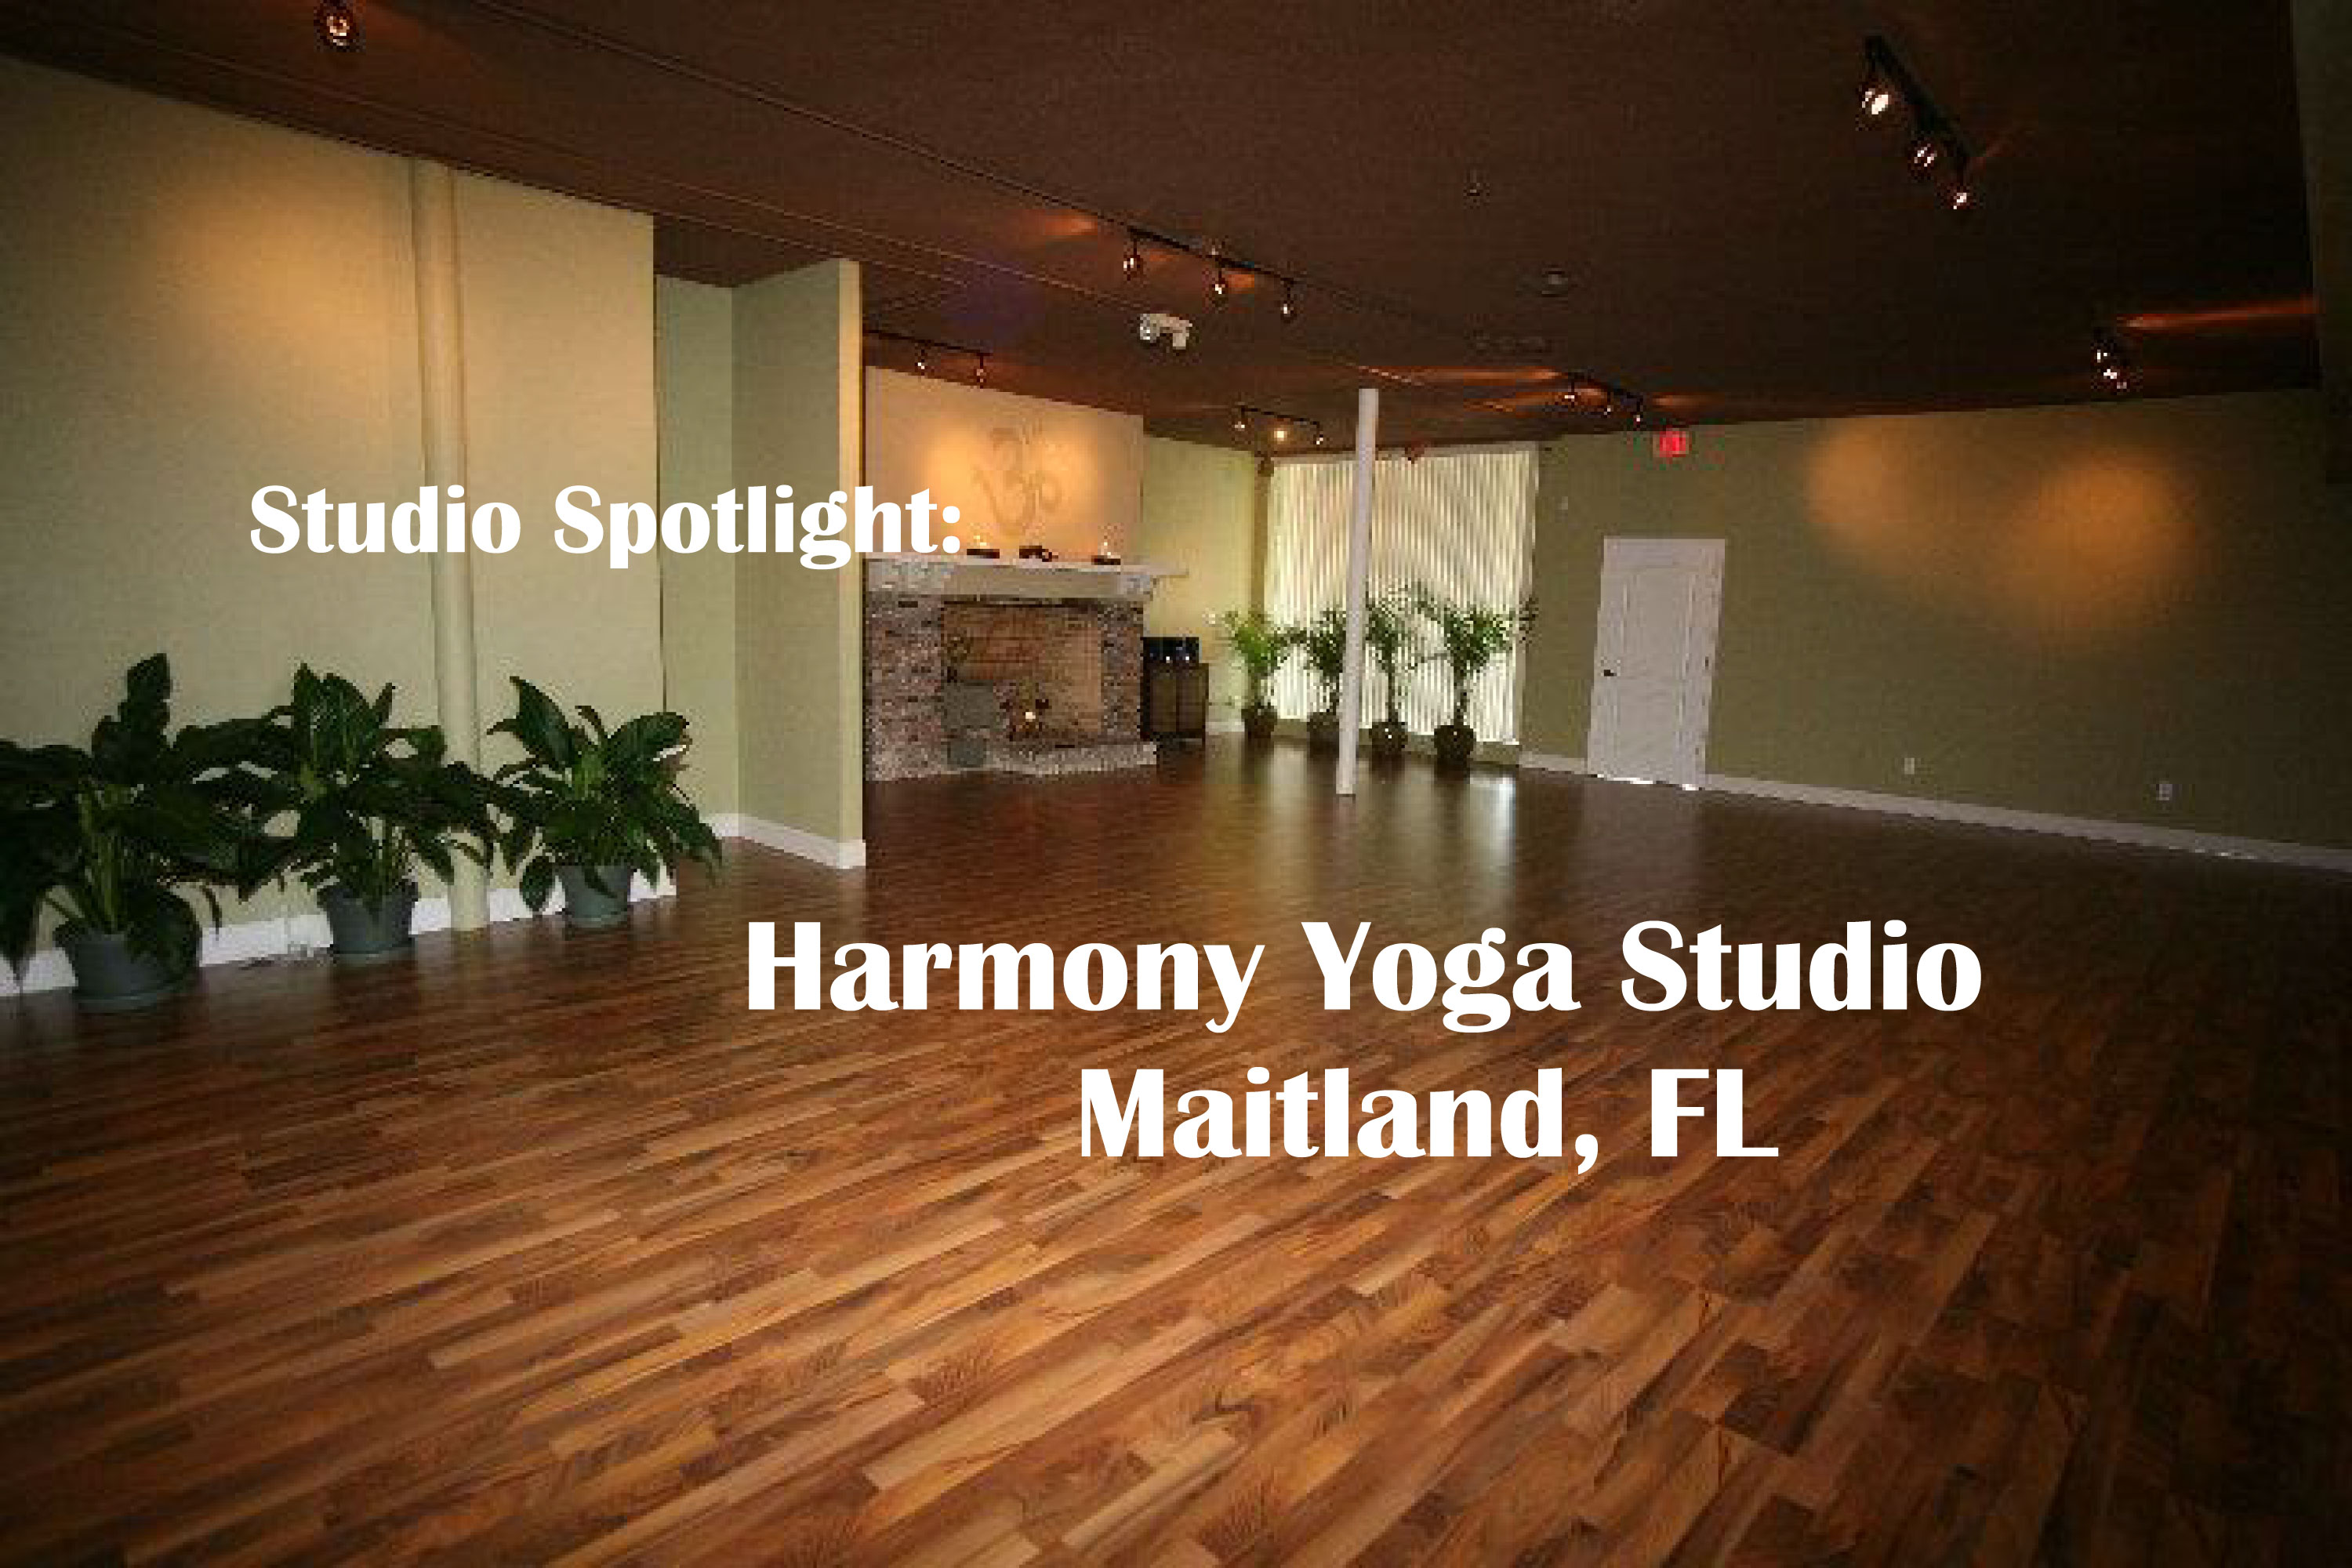 Harmony Yoga Studio on Maitland FL interview The Yogi Movement by Monica Dawn Stone